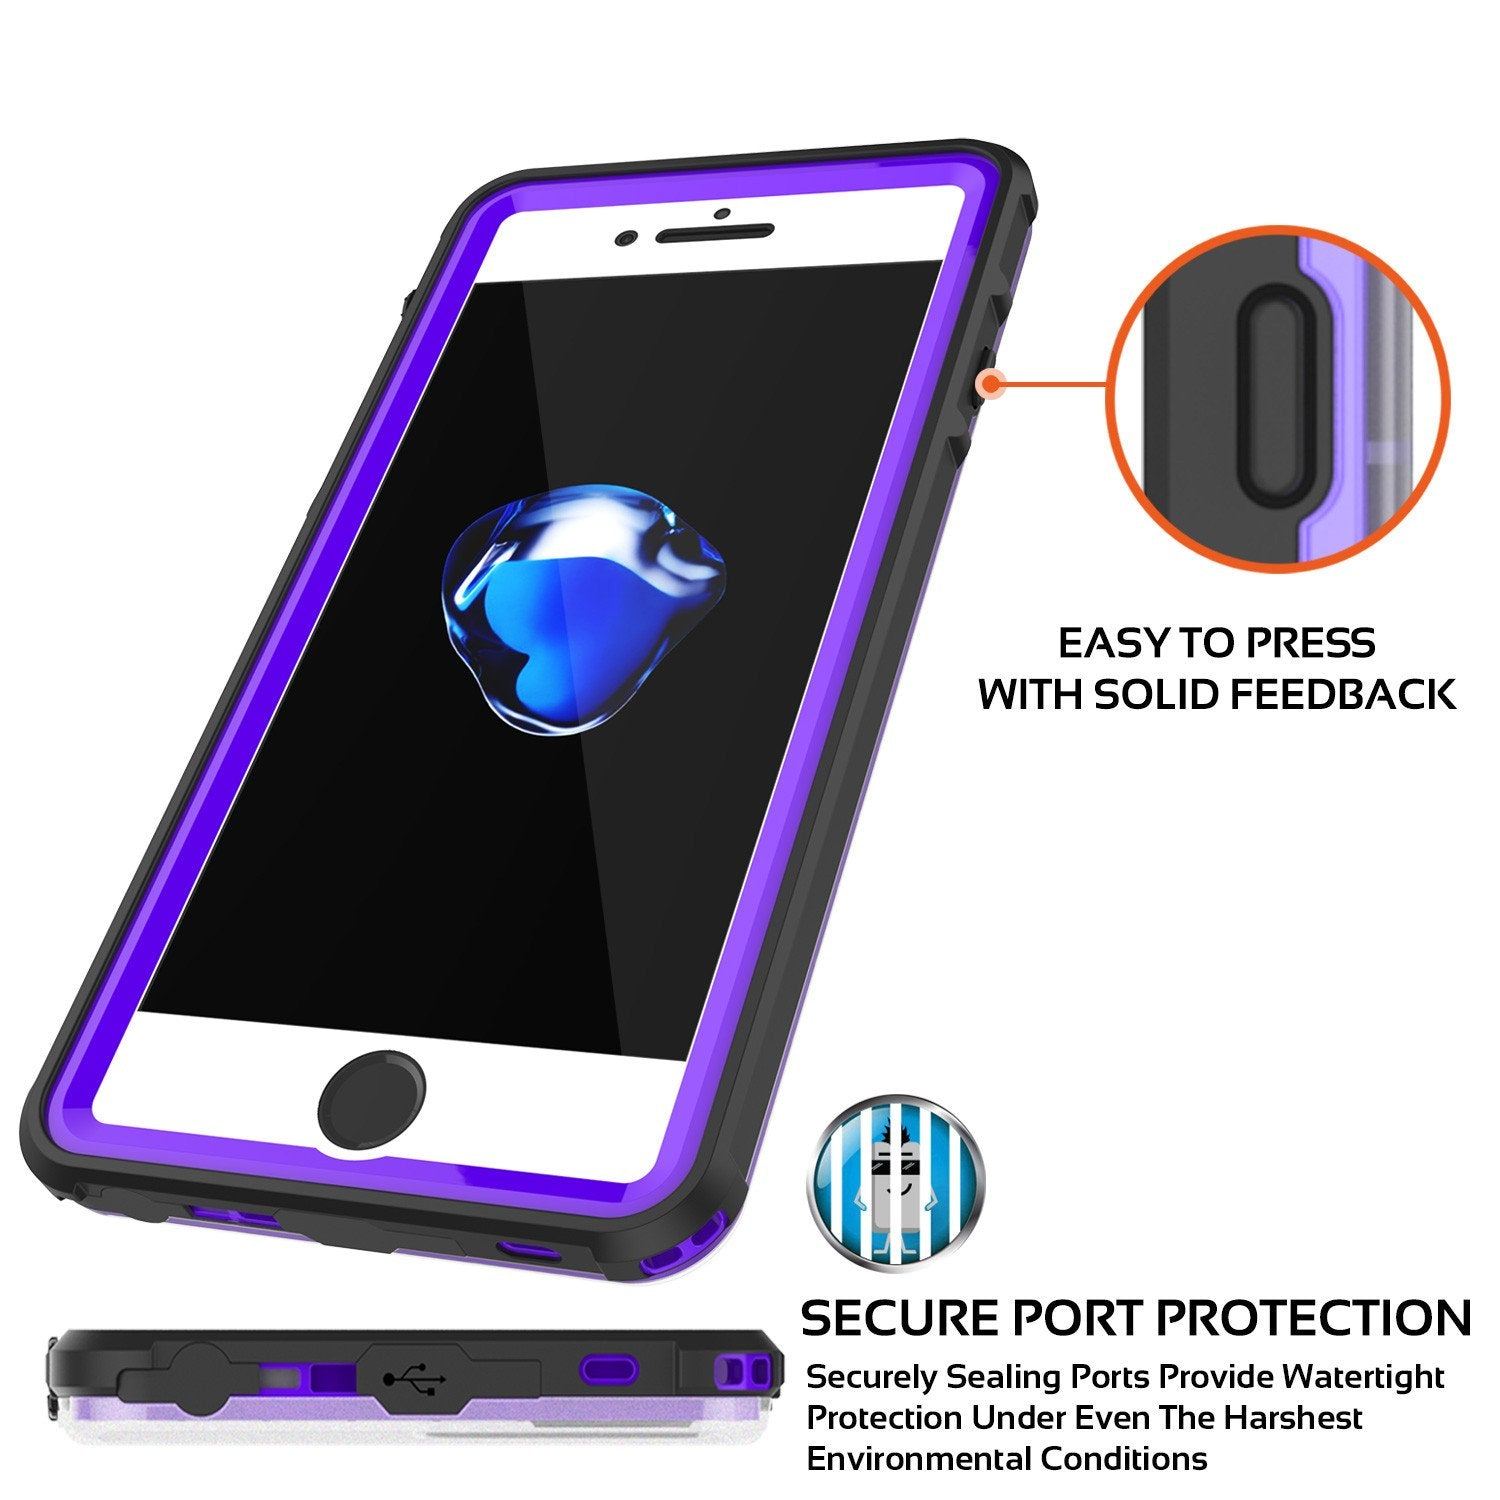 iPhone 7+ Plus Waterproof Case, PUNKcase CRYSTAL Purple W/ Attached Screen Protector  | Warranty - PunkCase NZ